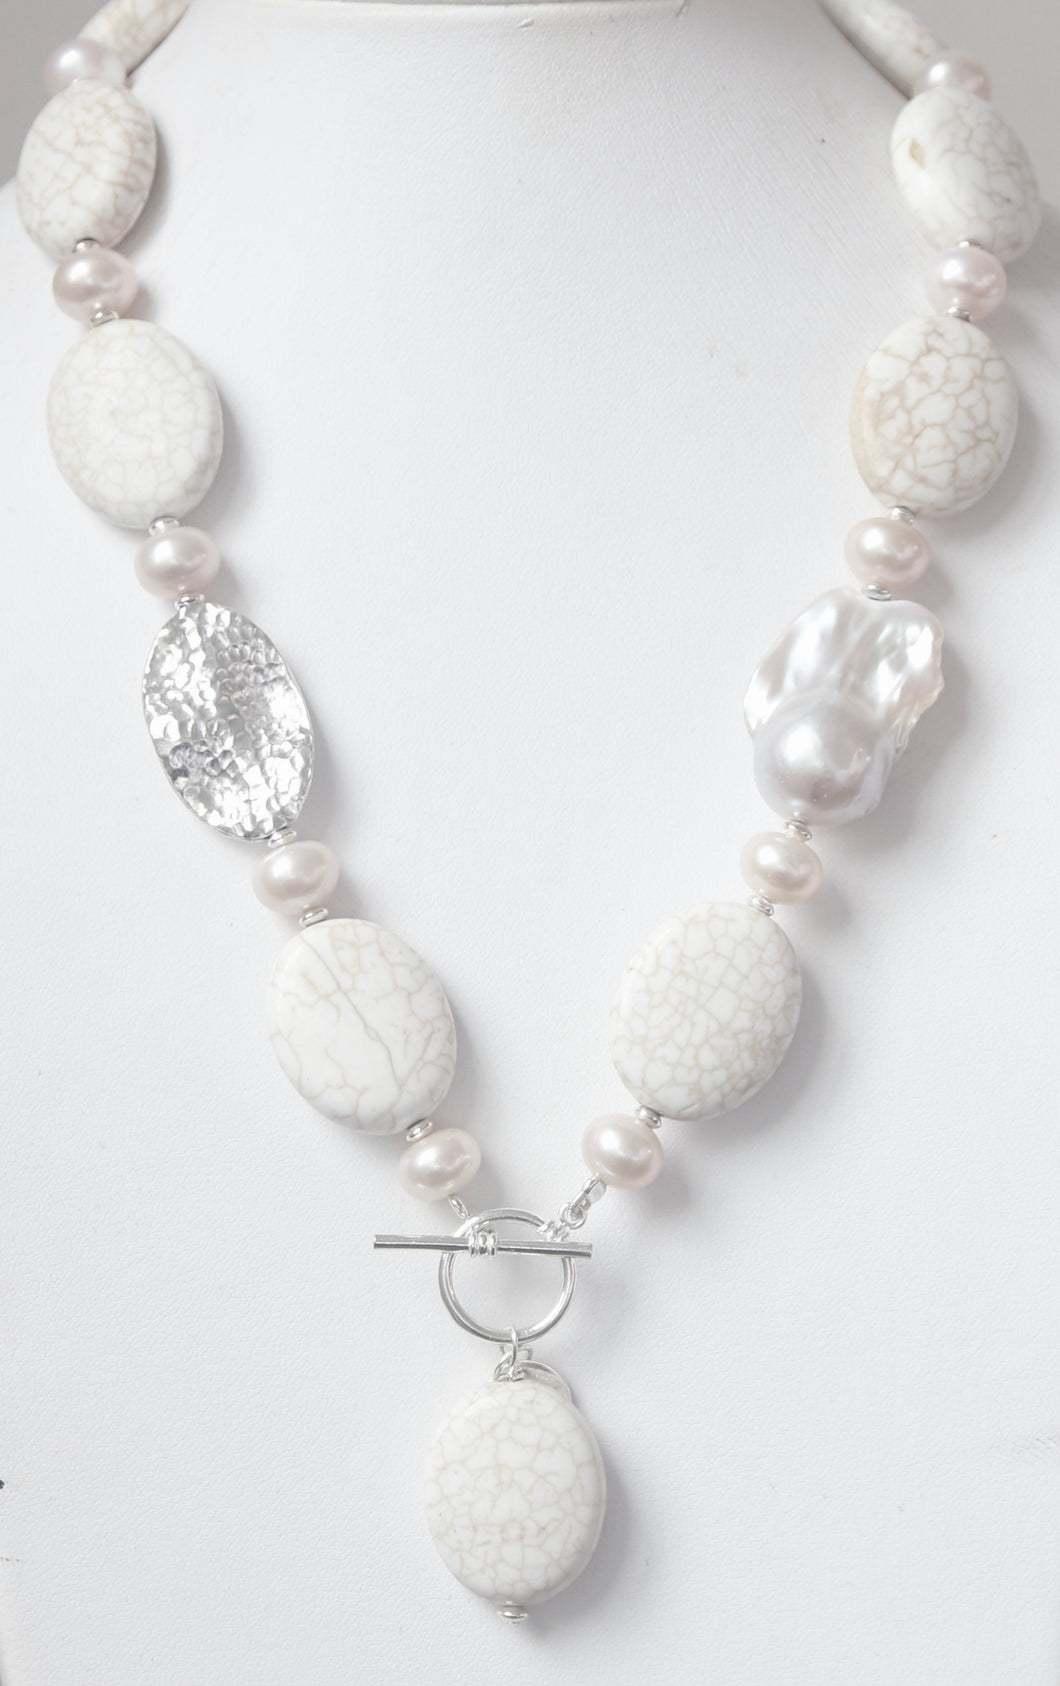 Australian Handmade White Toggle Necklace with Howlite Baroque Pearl Pearls and Sterling Silver